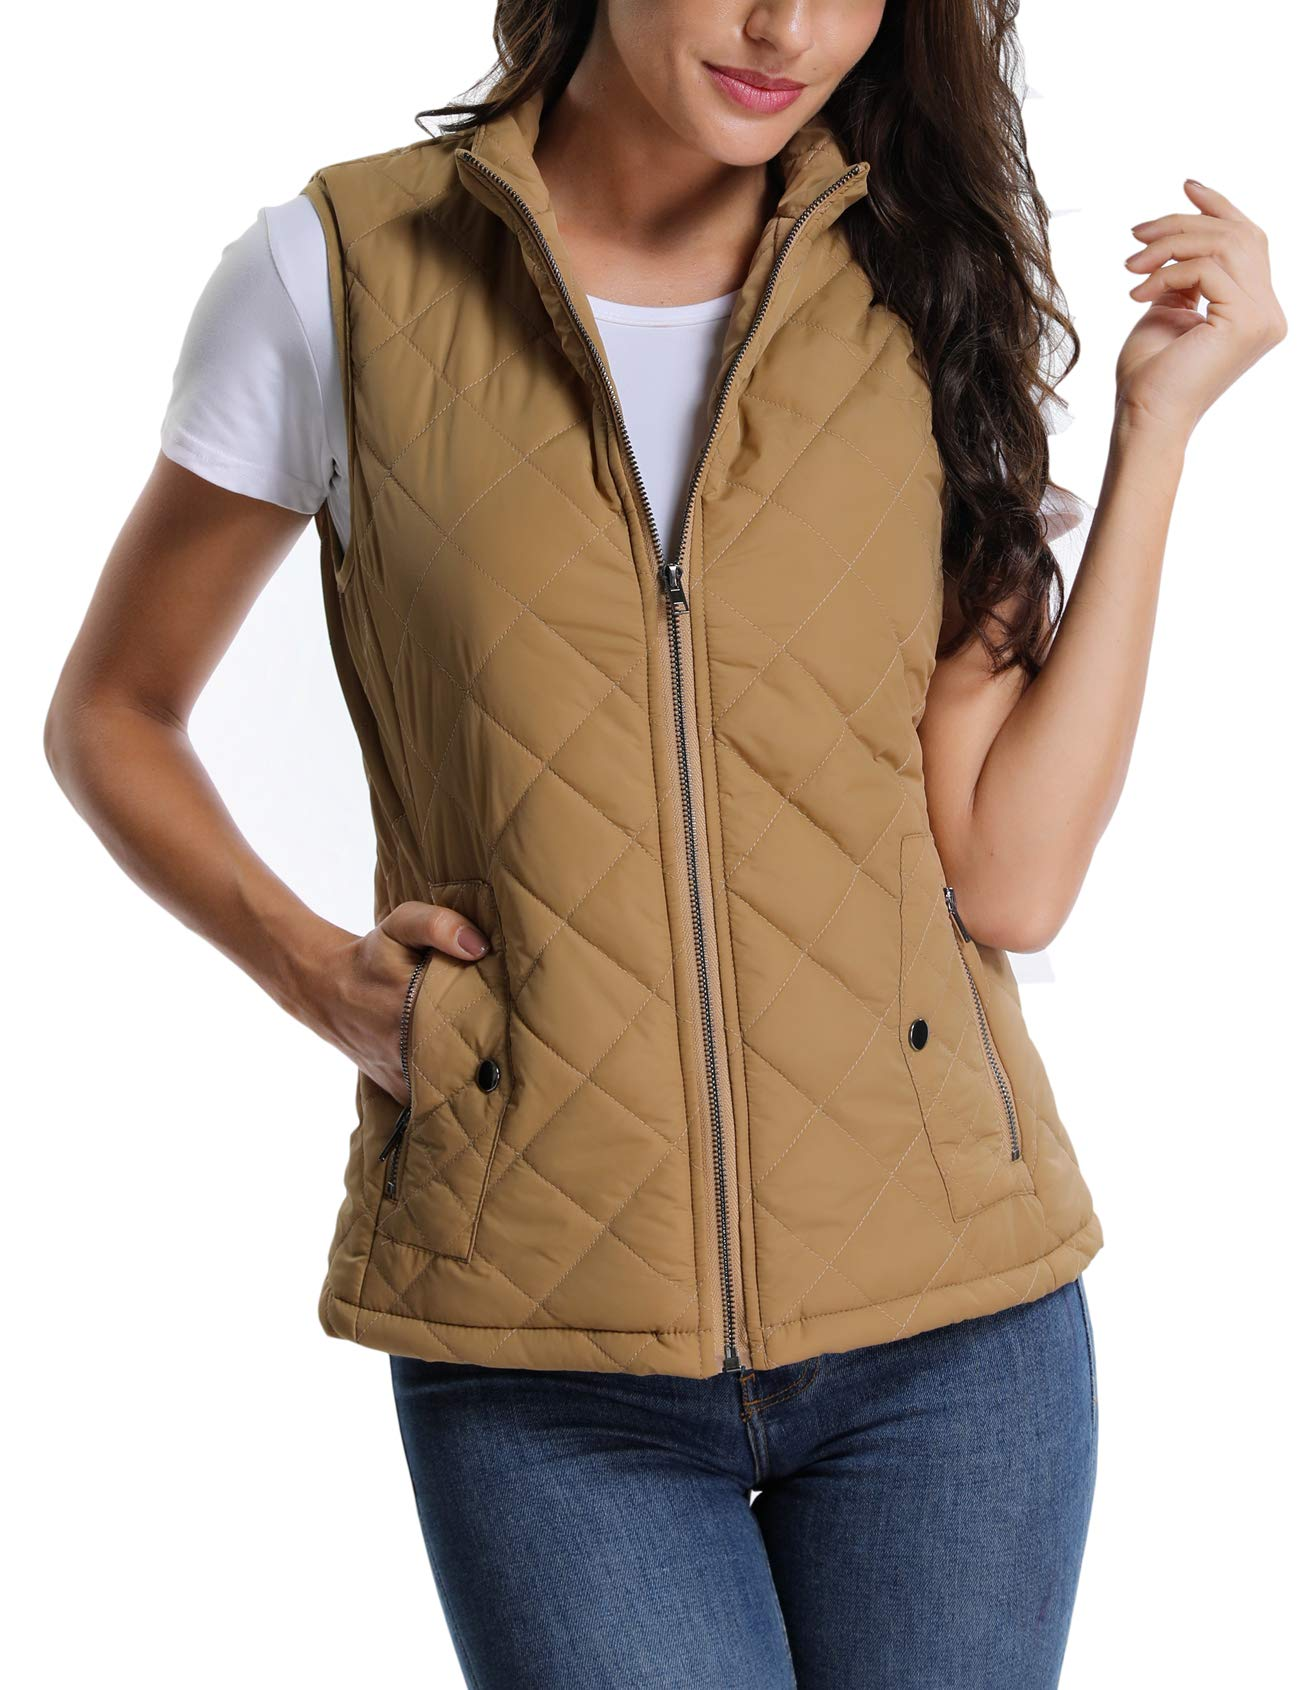 MISS MOLY Women's Stand Collar Lightweight Padded Zip up Sleeveless Vest Warm Quilted Gilets